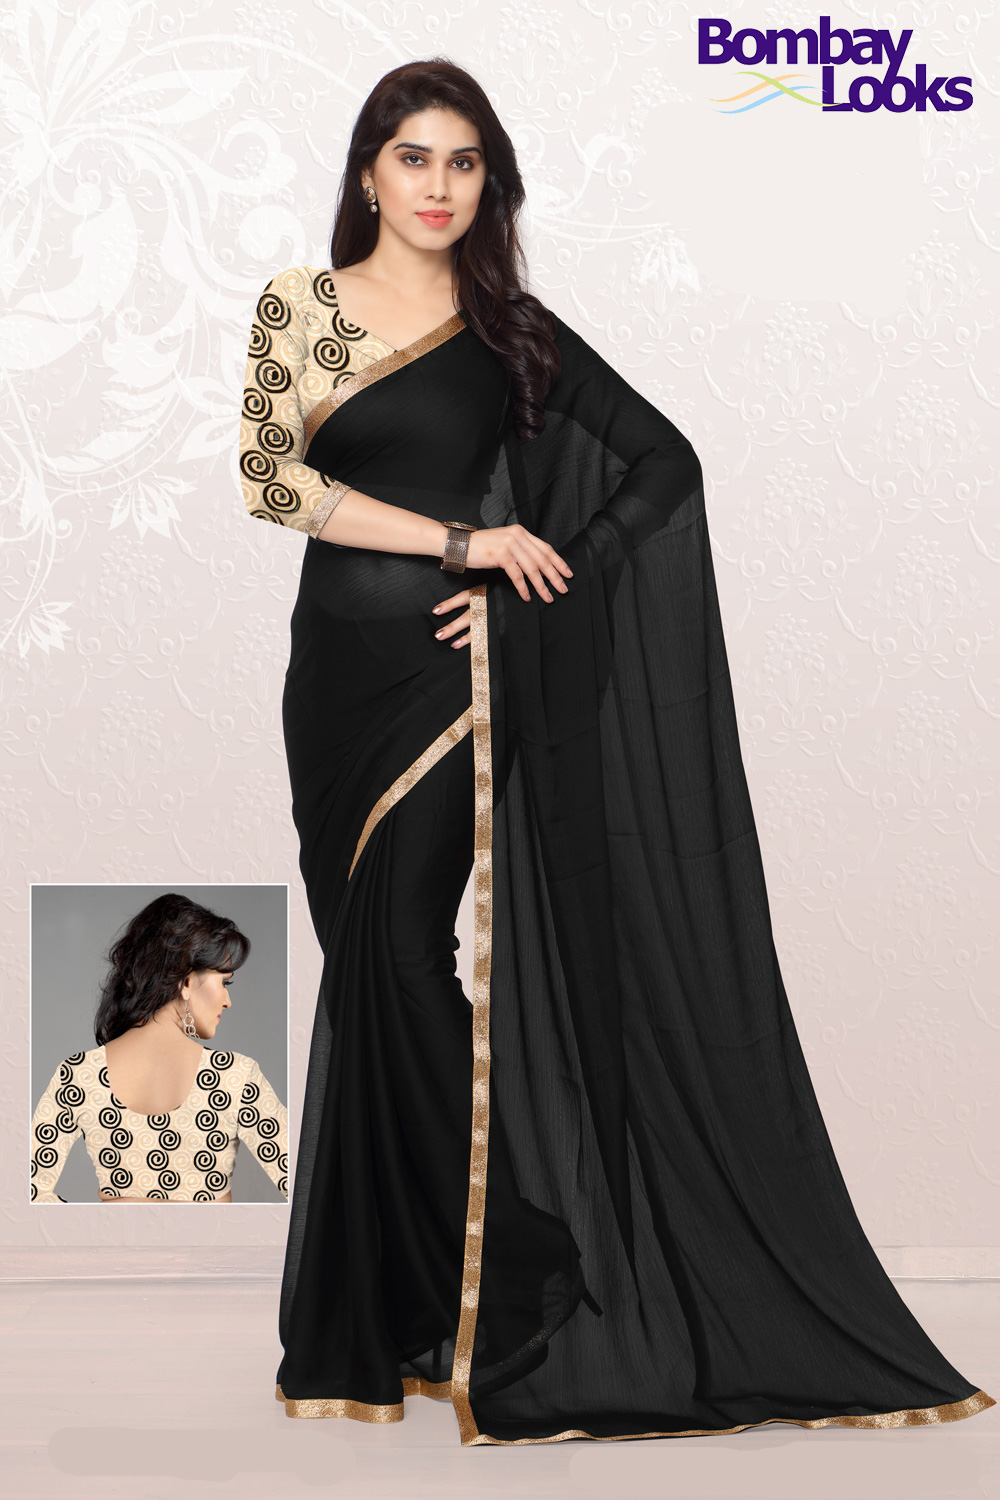 Pretty Black saree with dainty gold border